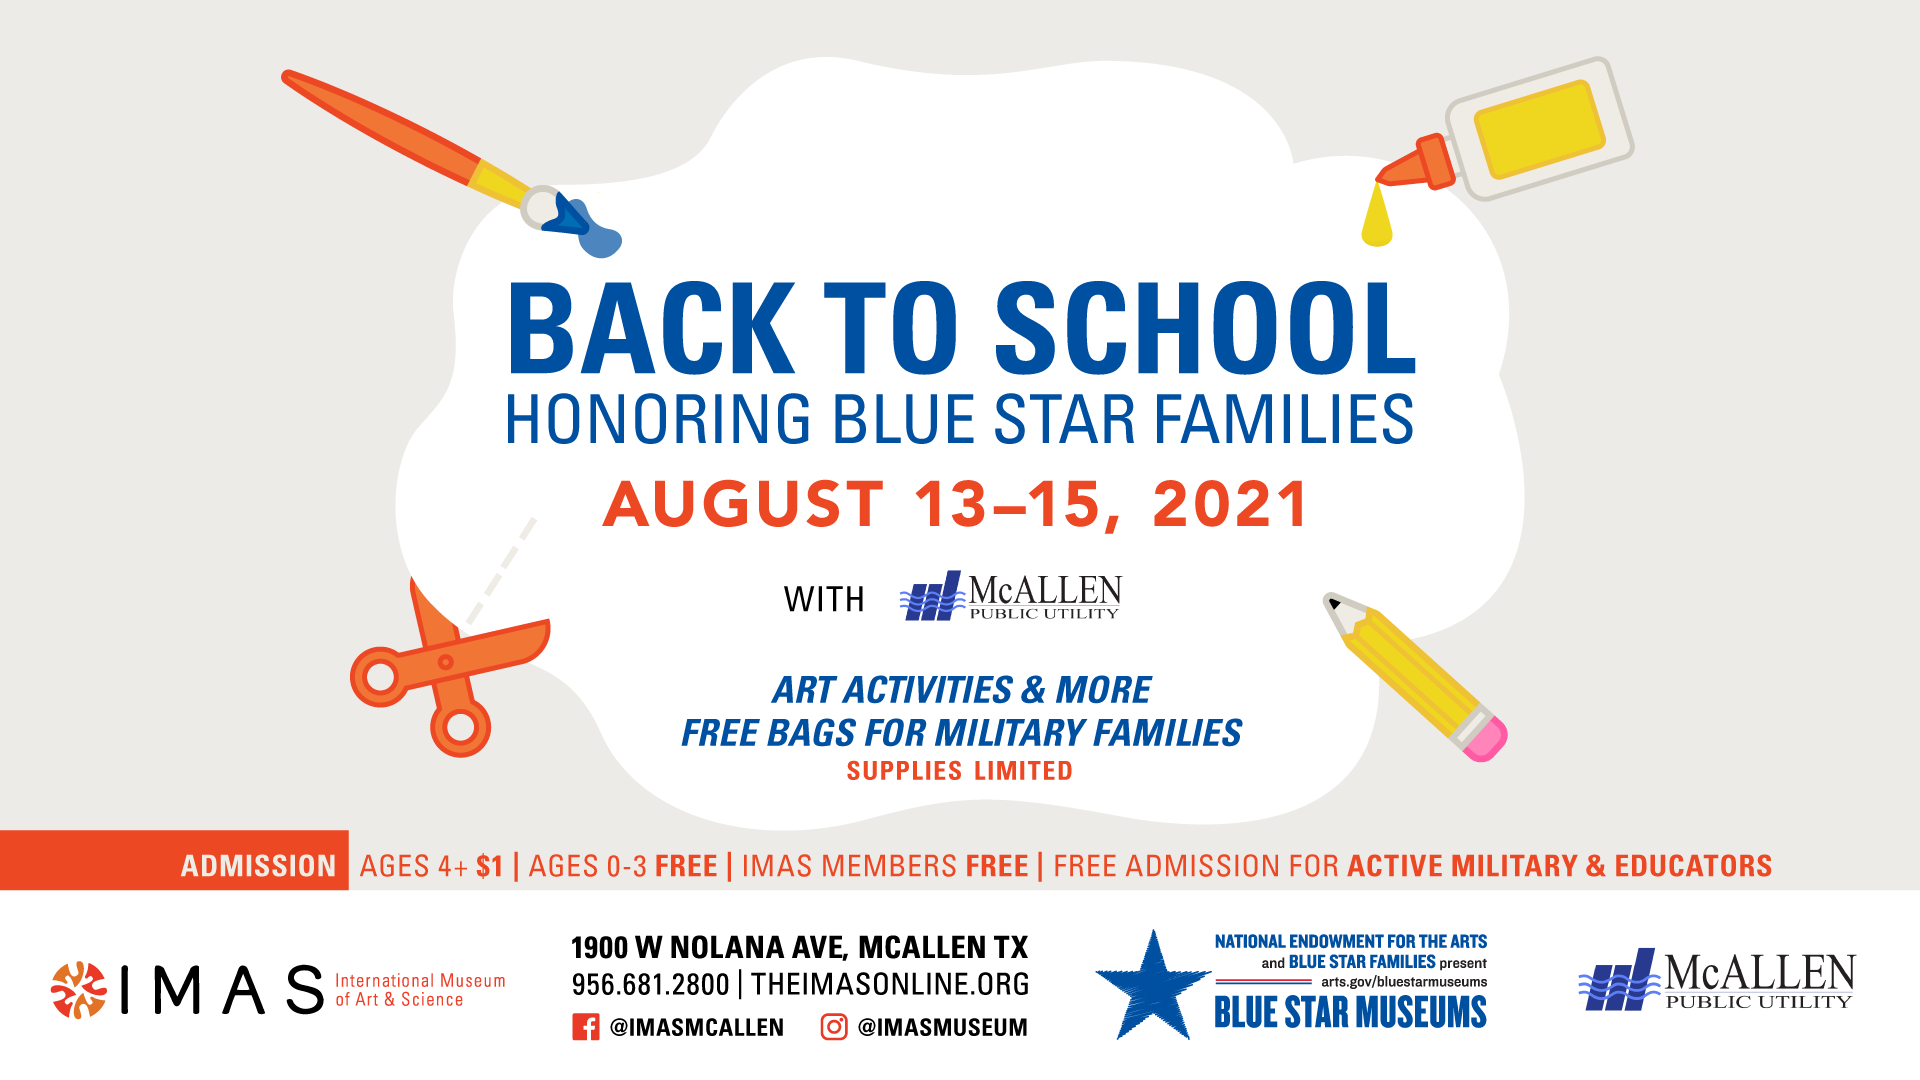 Back to School Weekend Honoring Blue Star Families with MPU